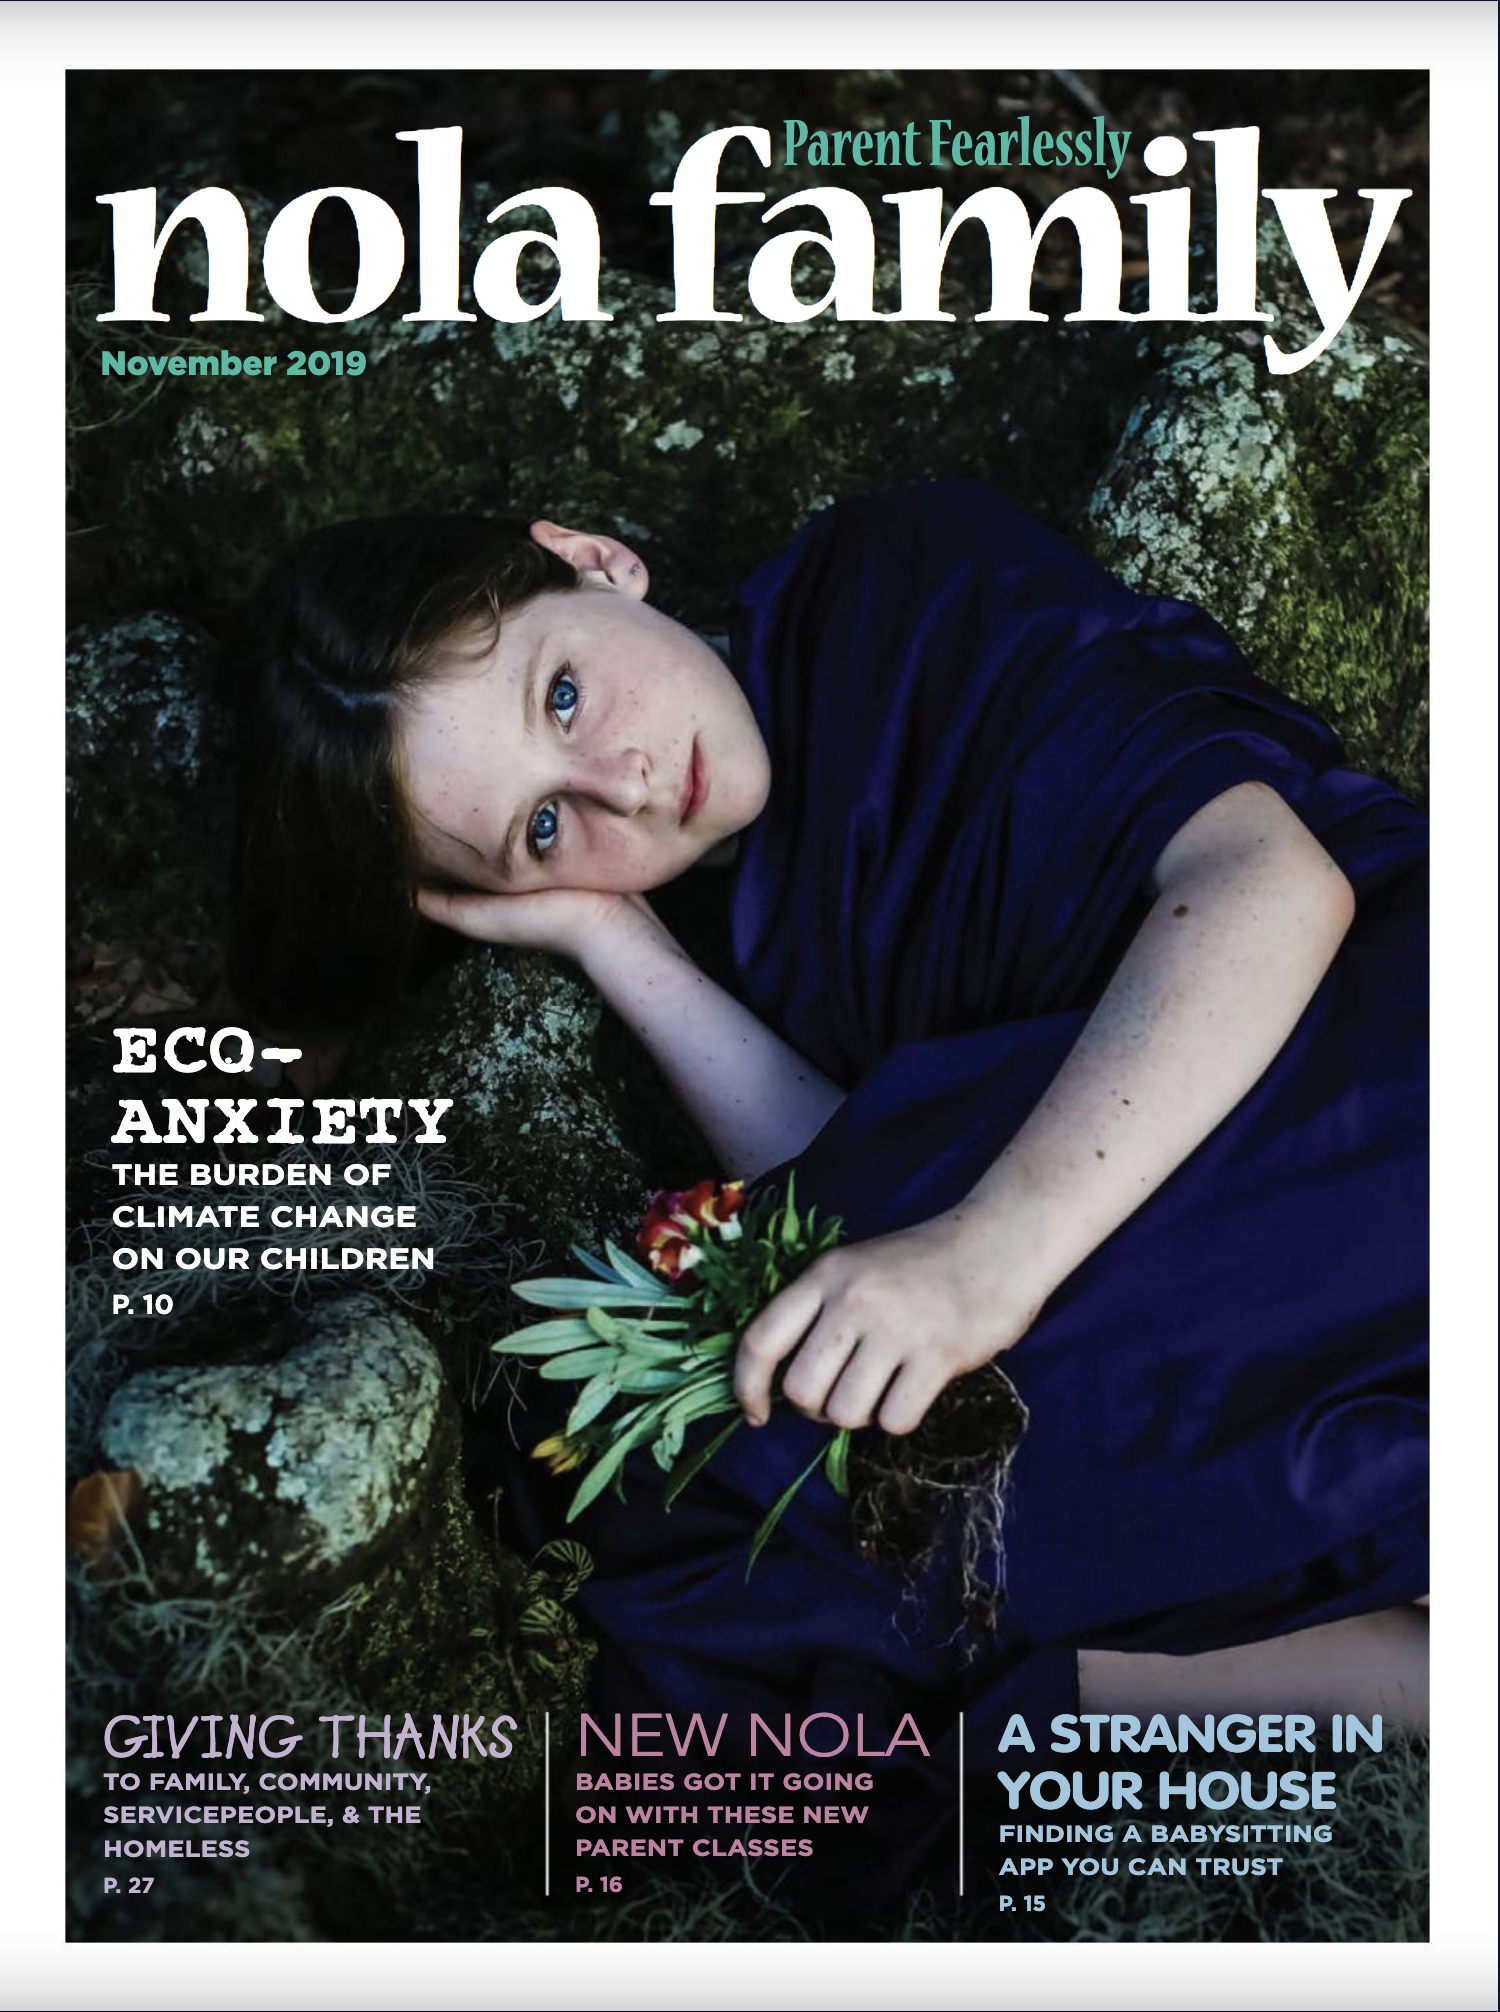 NOLA Family Magazine - Dr. Lawing discussed the impact of climate change on mental health and how her treatment techniques can help those with eco-anxiety.https://issuu.com/fleurdelispublishing/docs/nolafamily_november2019?fr=sZDNiNDQ1OTMyNg